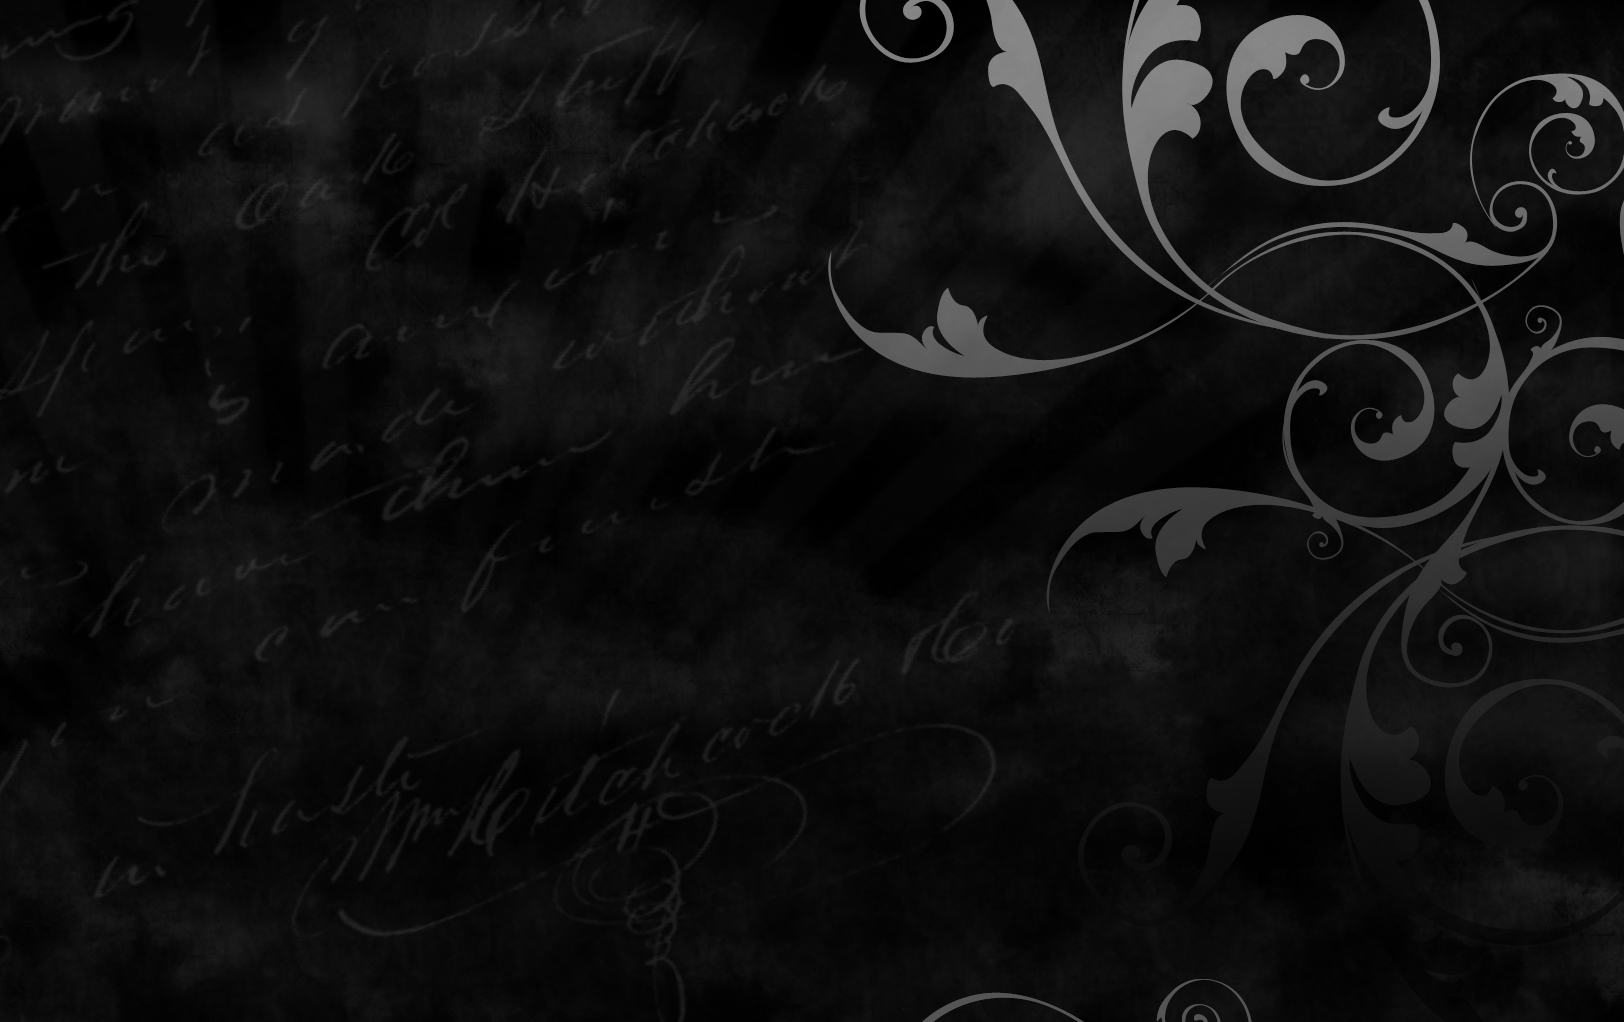 HD Wallpapers Abstract Black Wallpaper Free Download 2014 Image Black ...